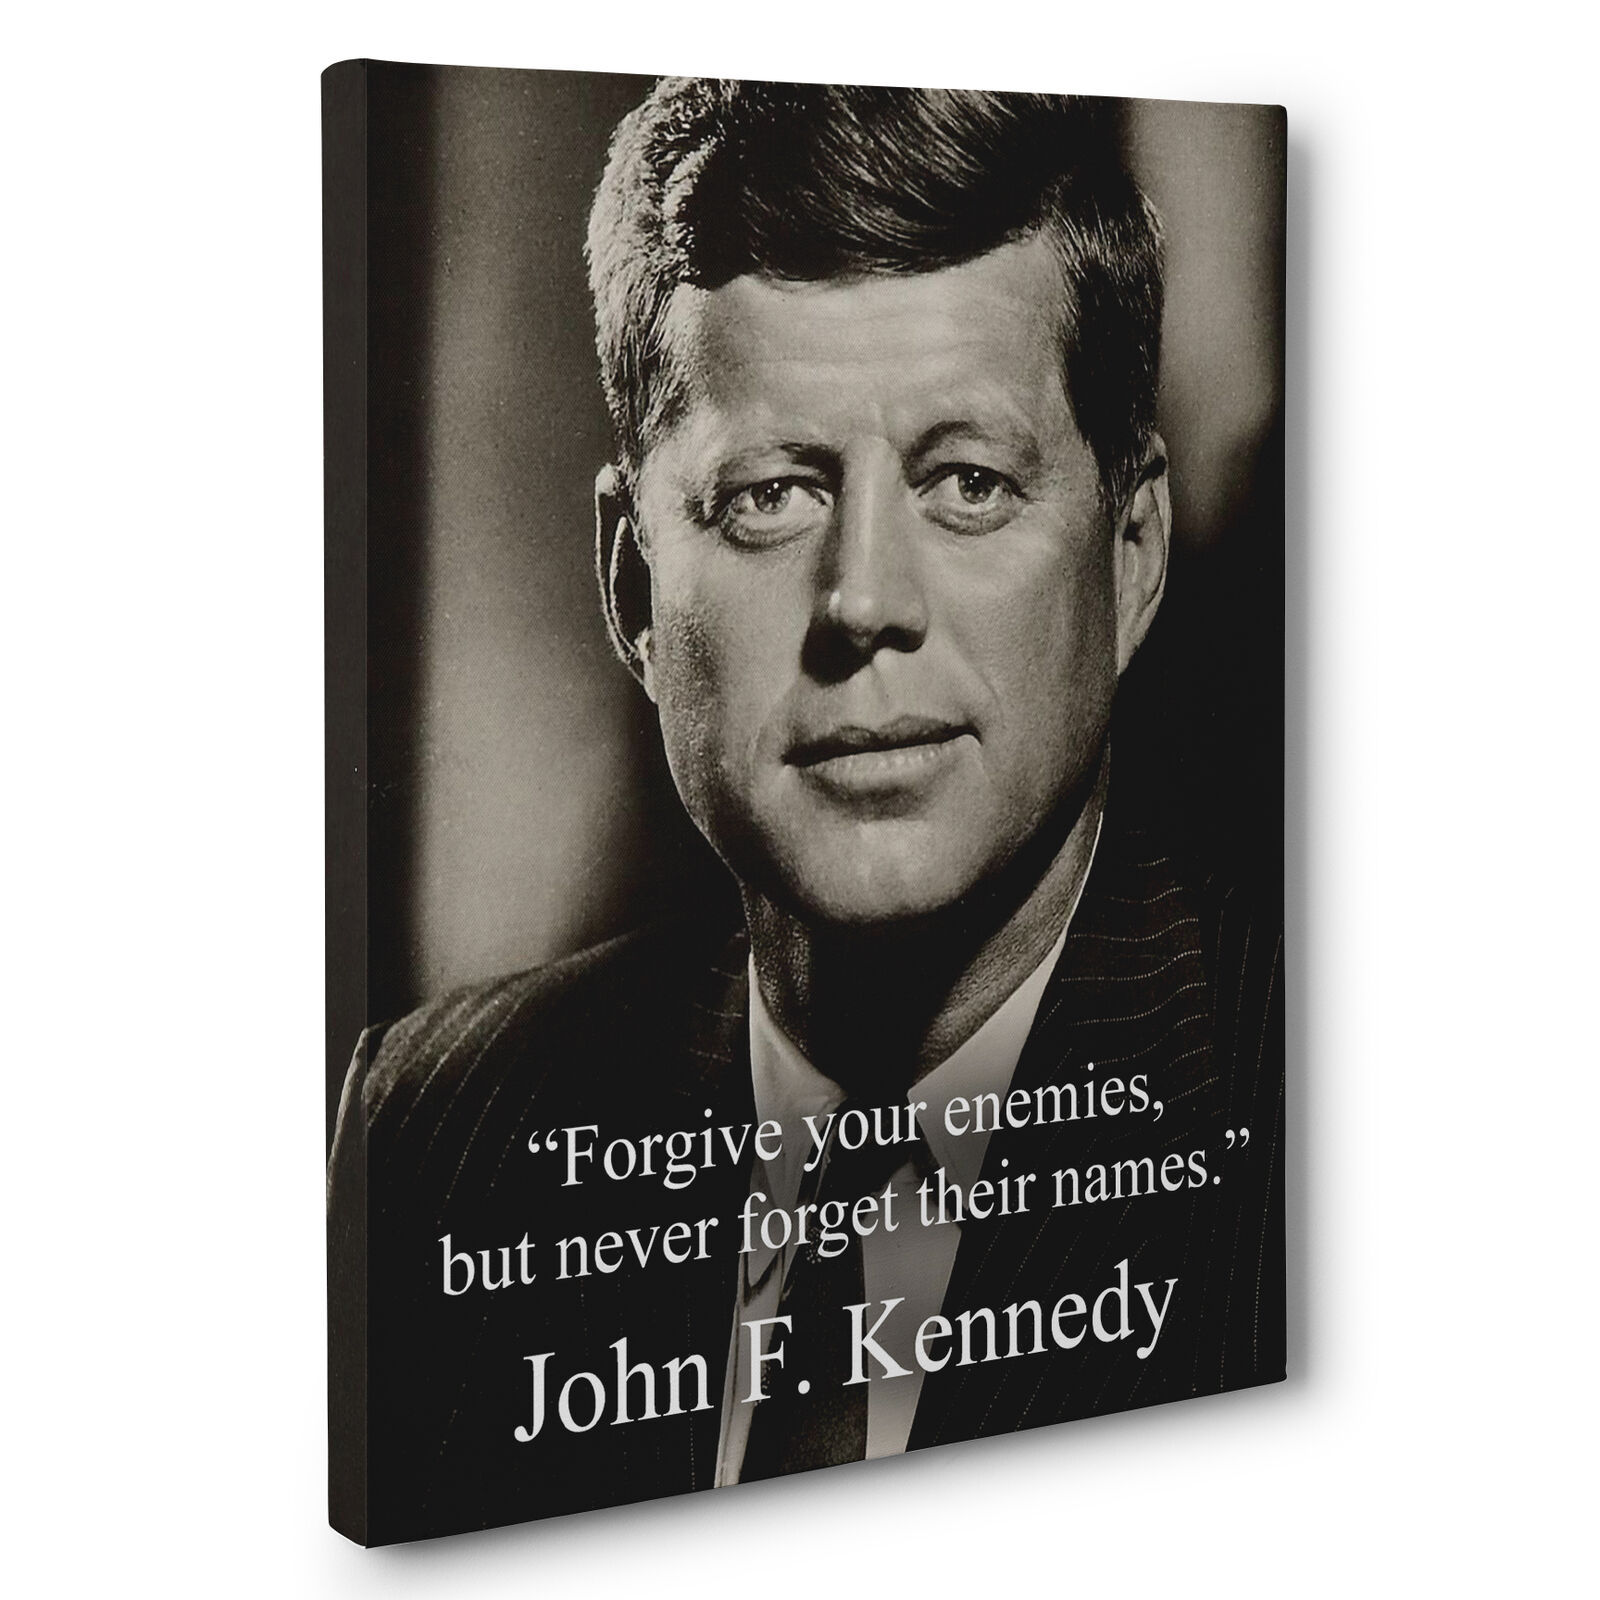 John F Kennedy Quotes: John F. Kennedy Motivation Quote Canvas Wall Art